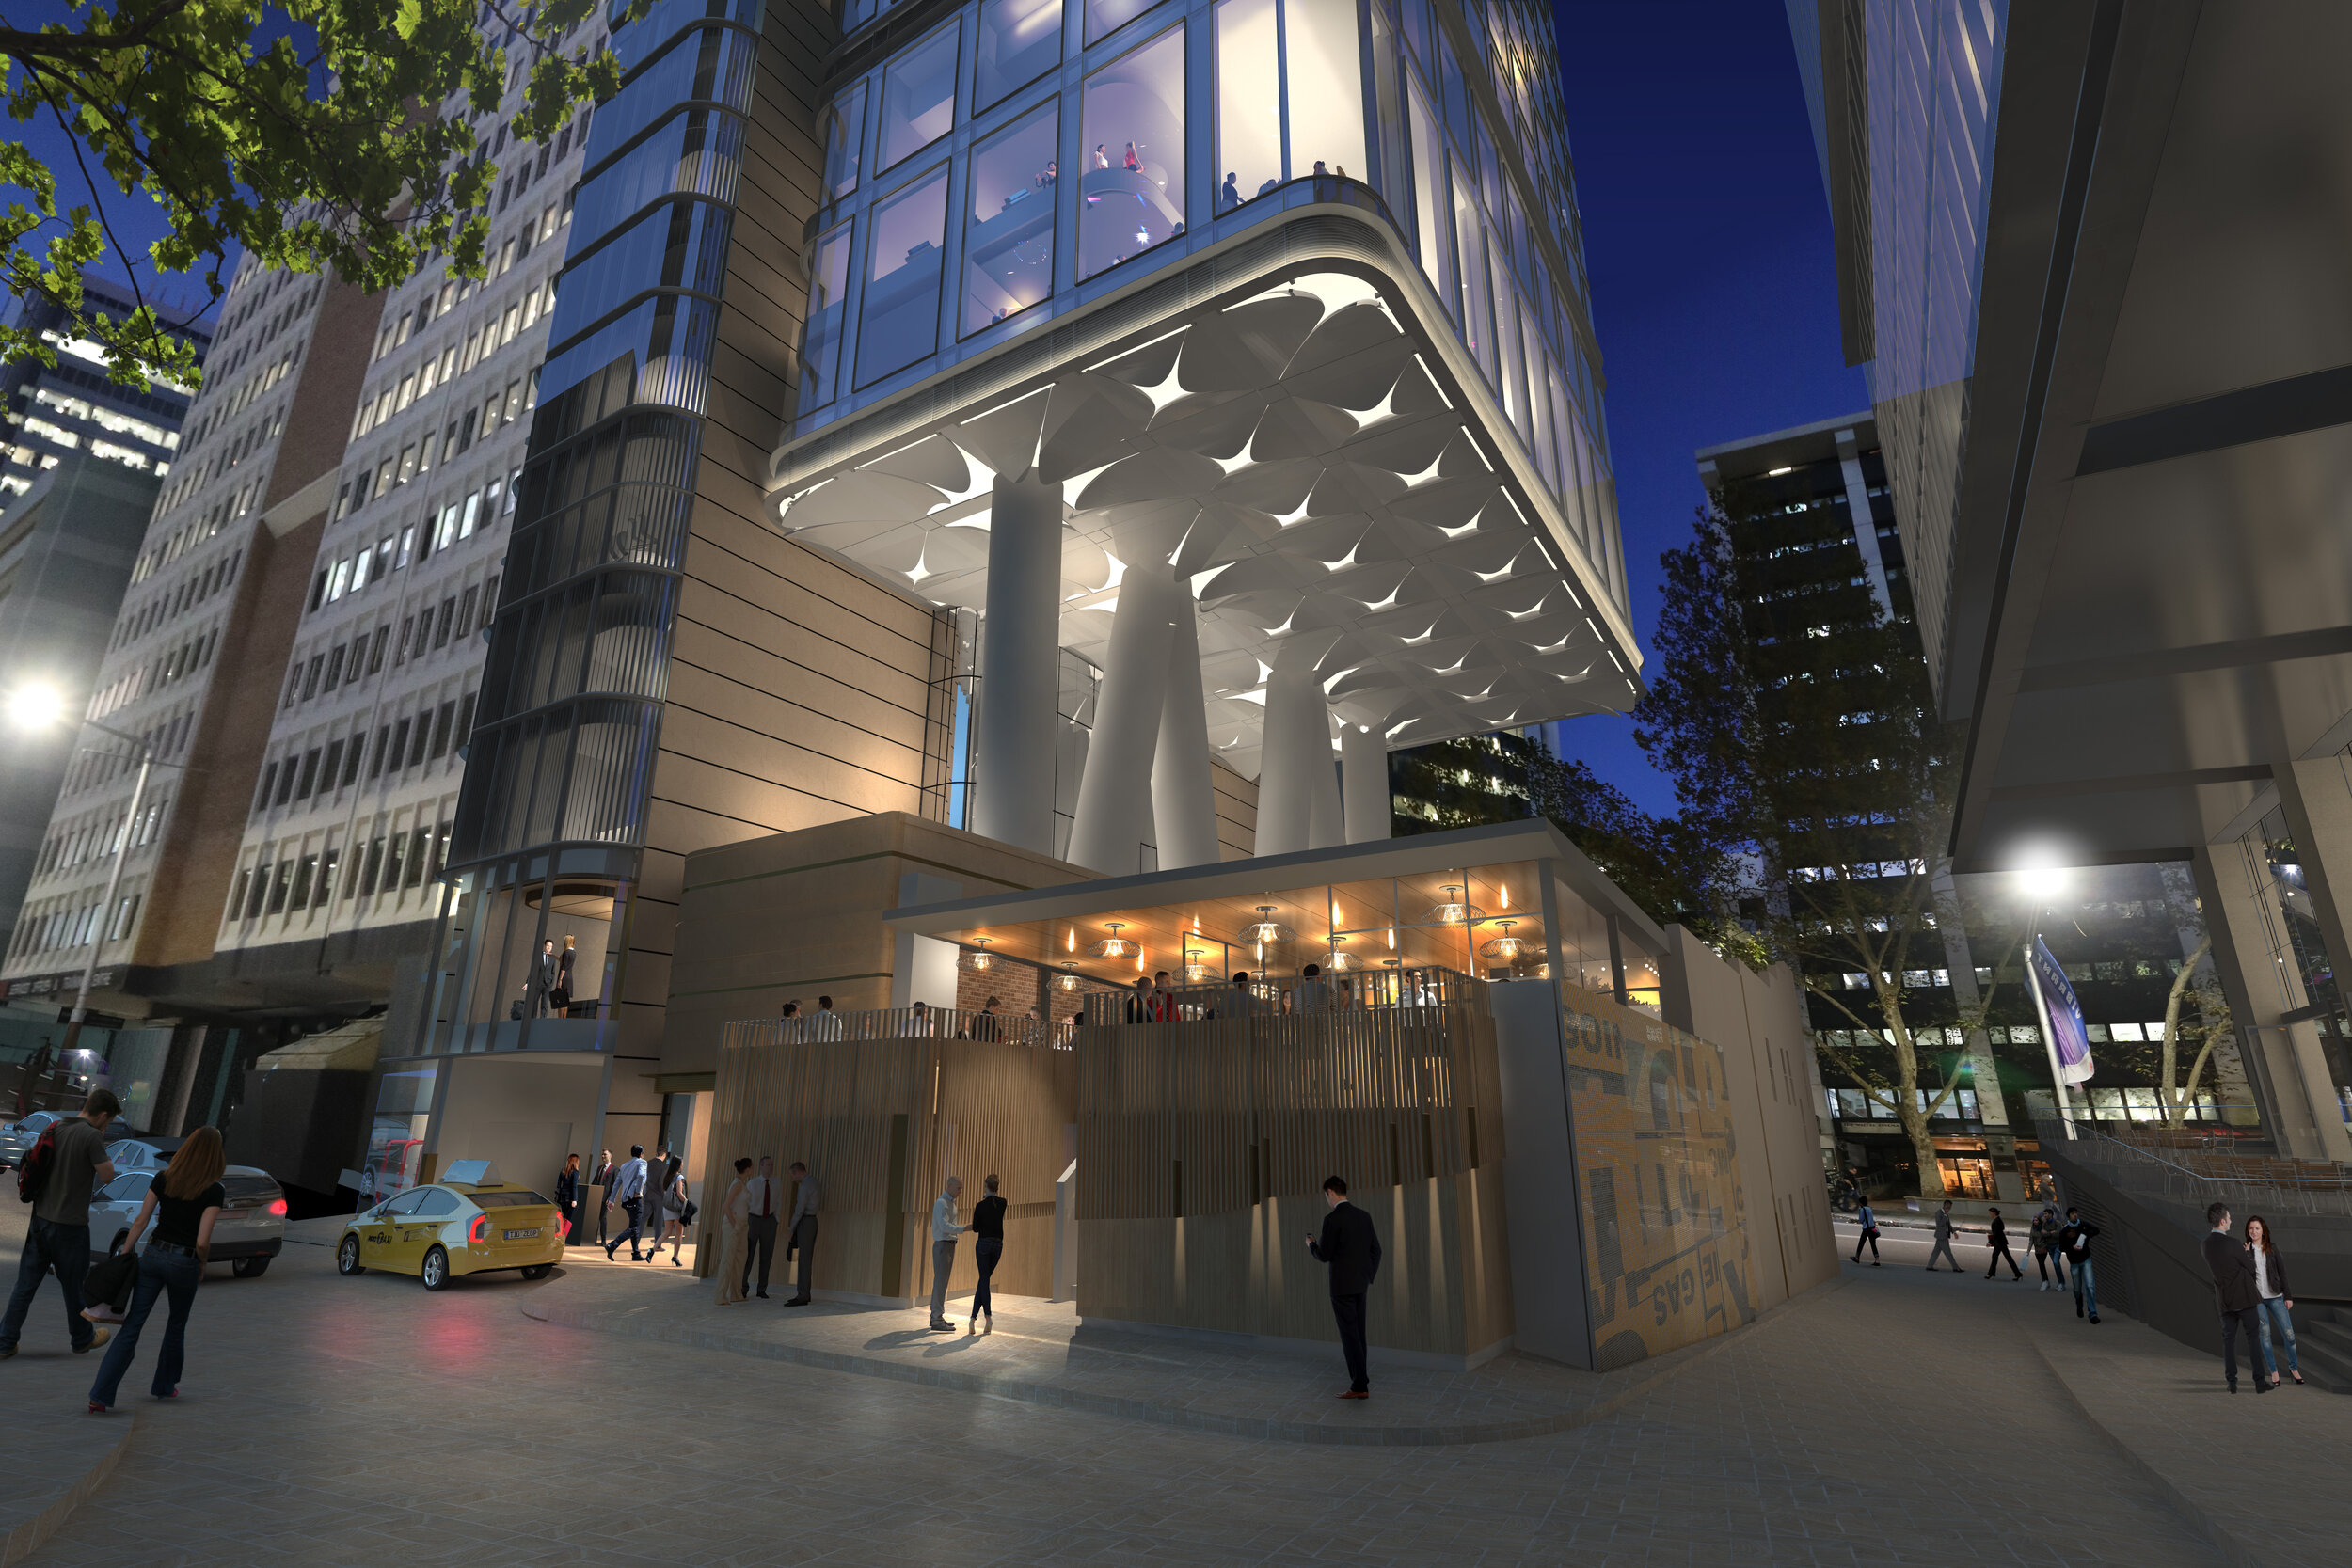 Architects impression of the 88 Walker development. The artwork will sit across the hotel entrance and wrap around into the Spring Street laneway.